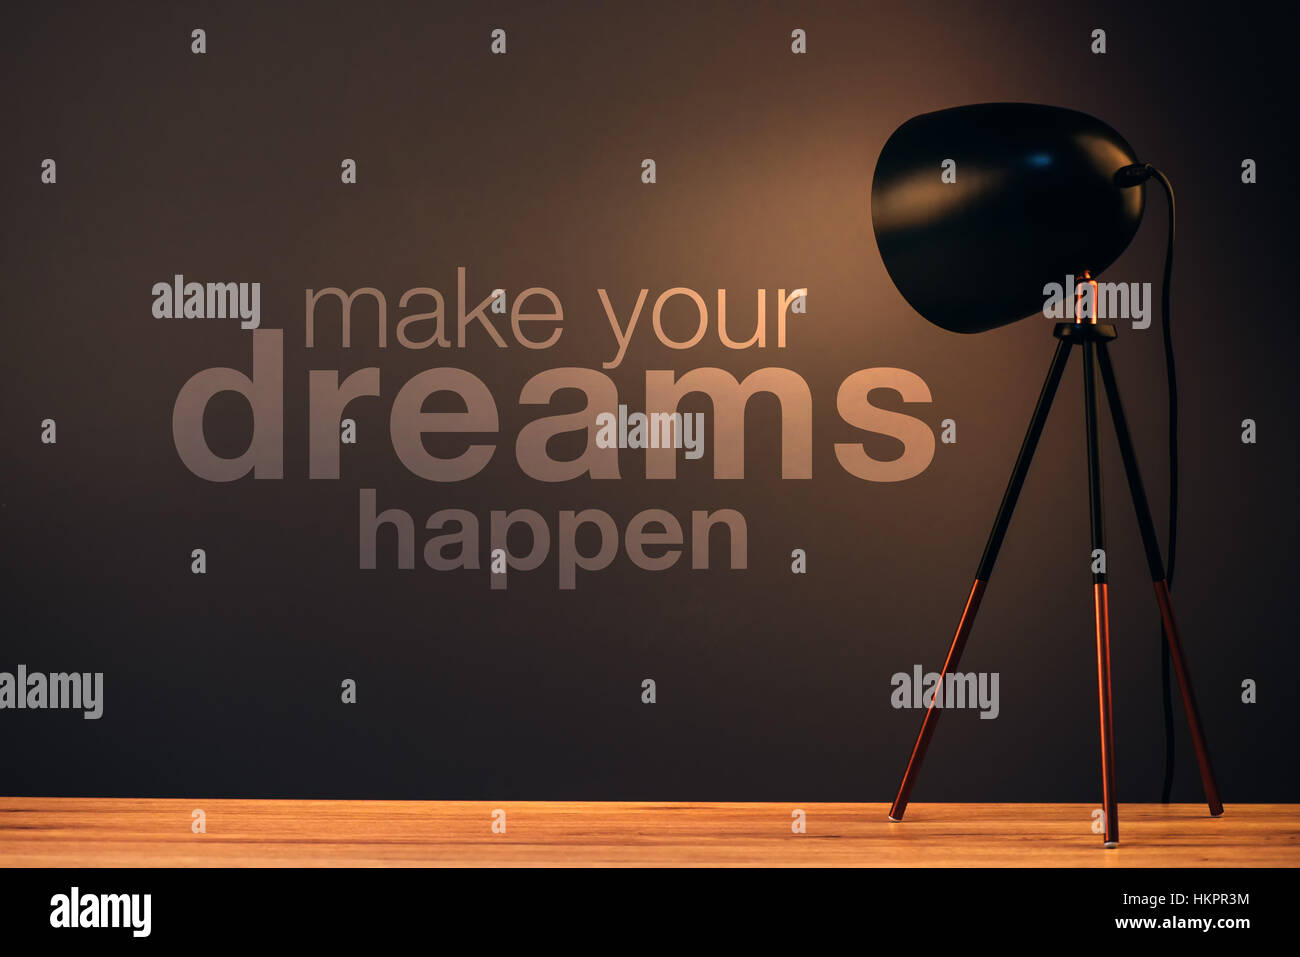 Make your dreams happen, motivational quote on office wall illuminated with desk lamp Stock Photo